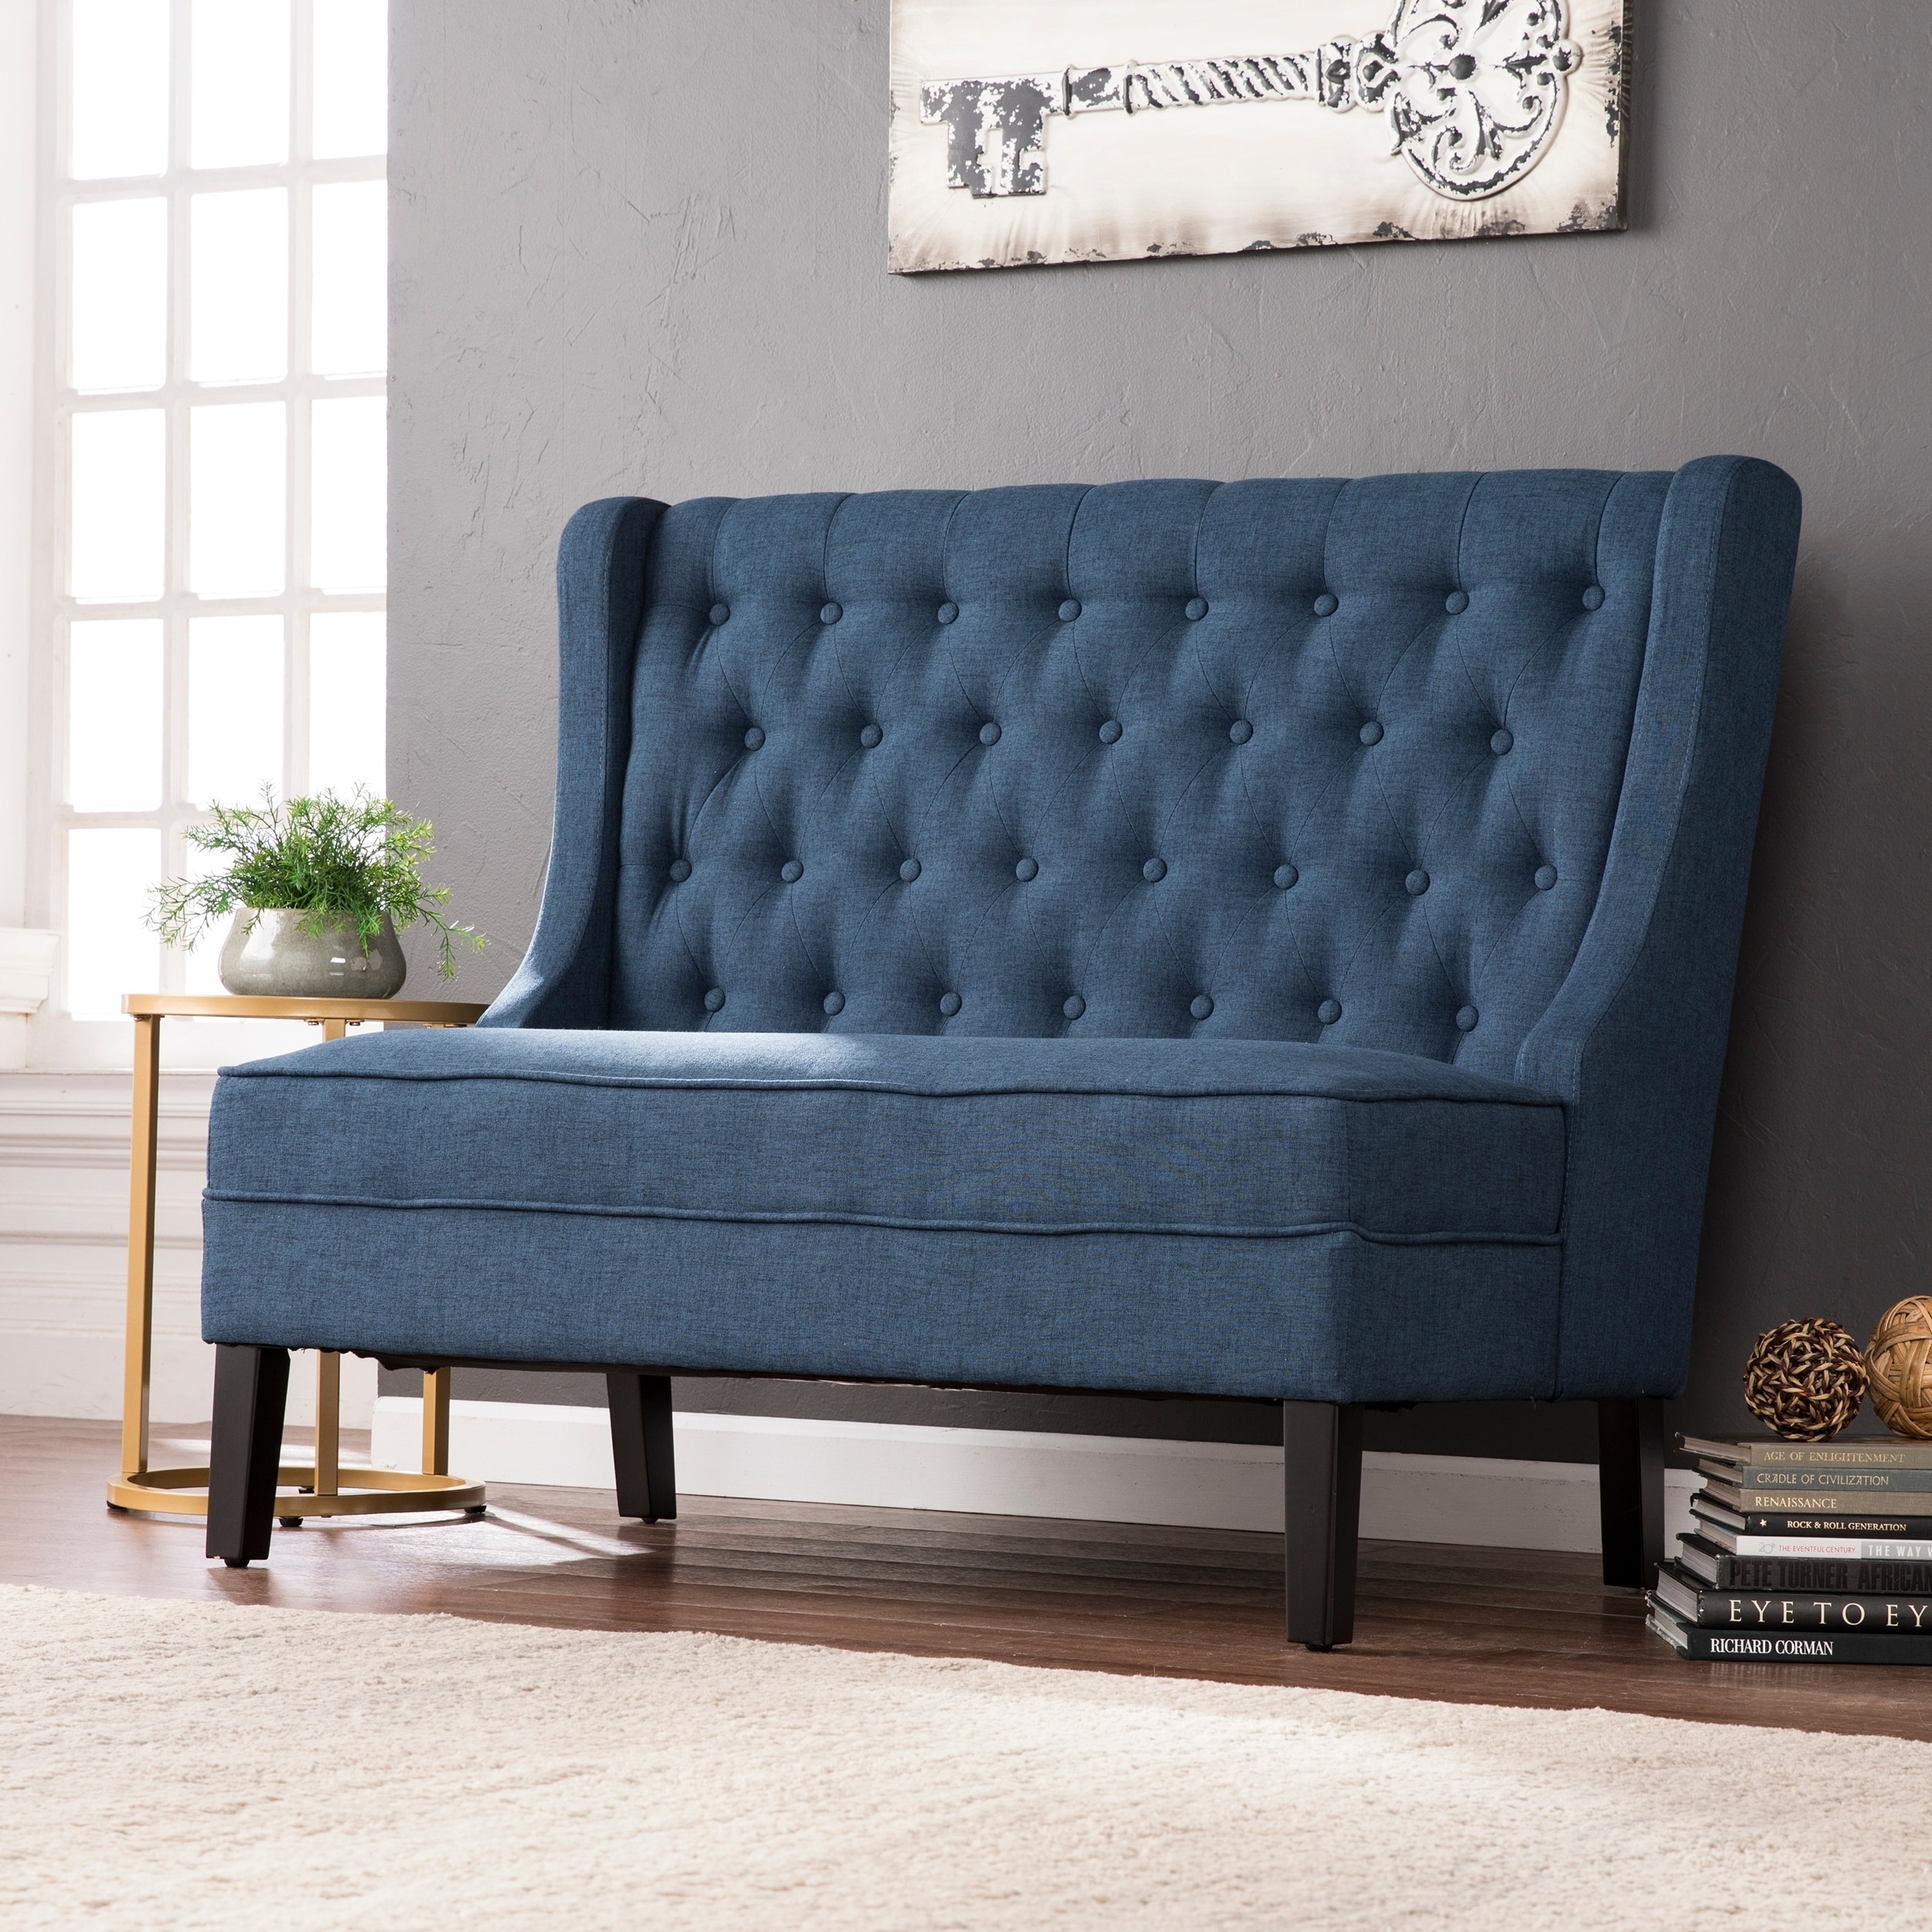 Harper Blvd Lincoln Charcoal HighBack Tufted Settee Bench eBay